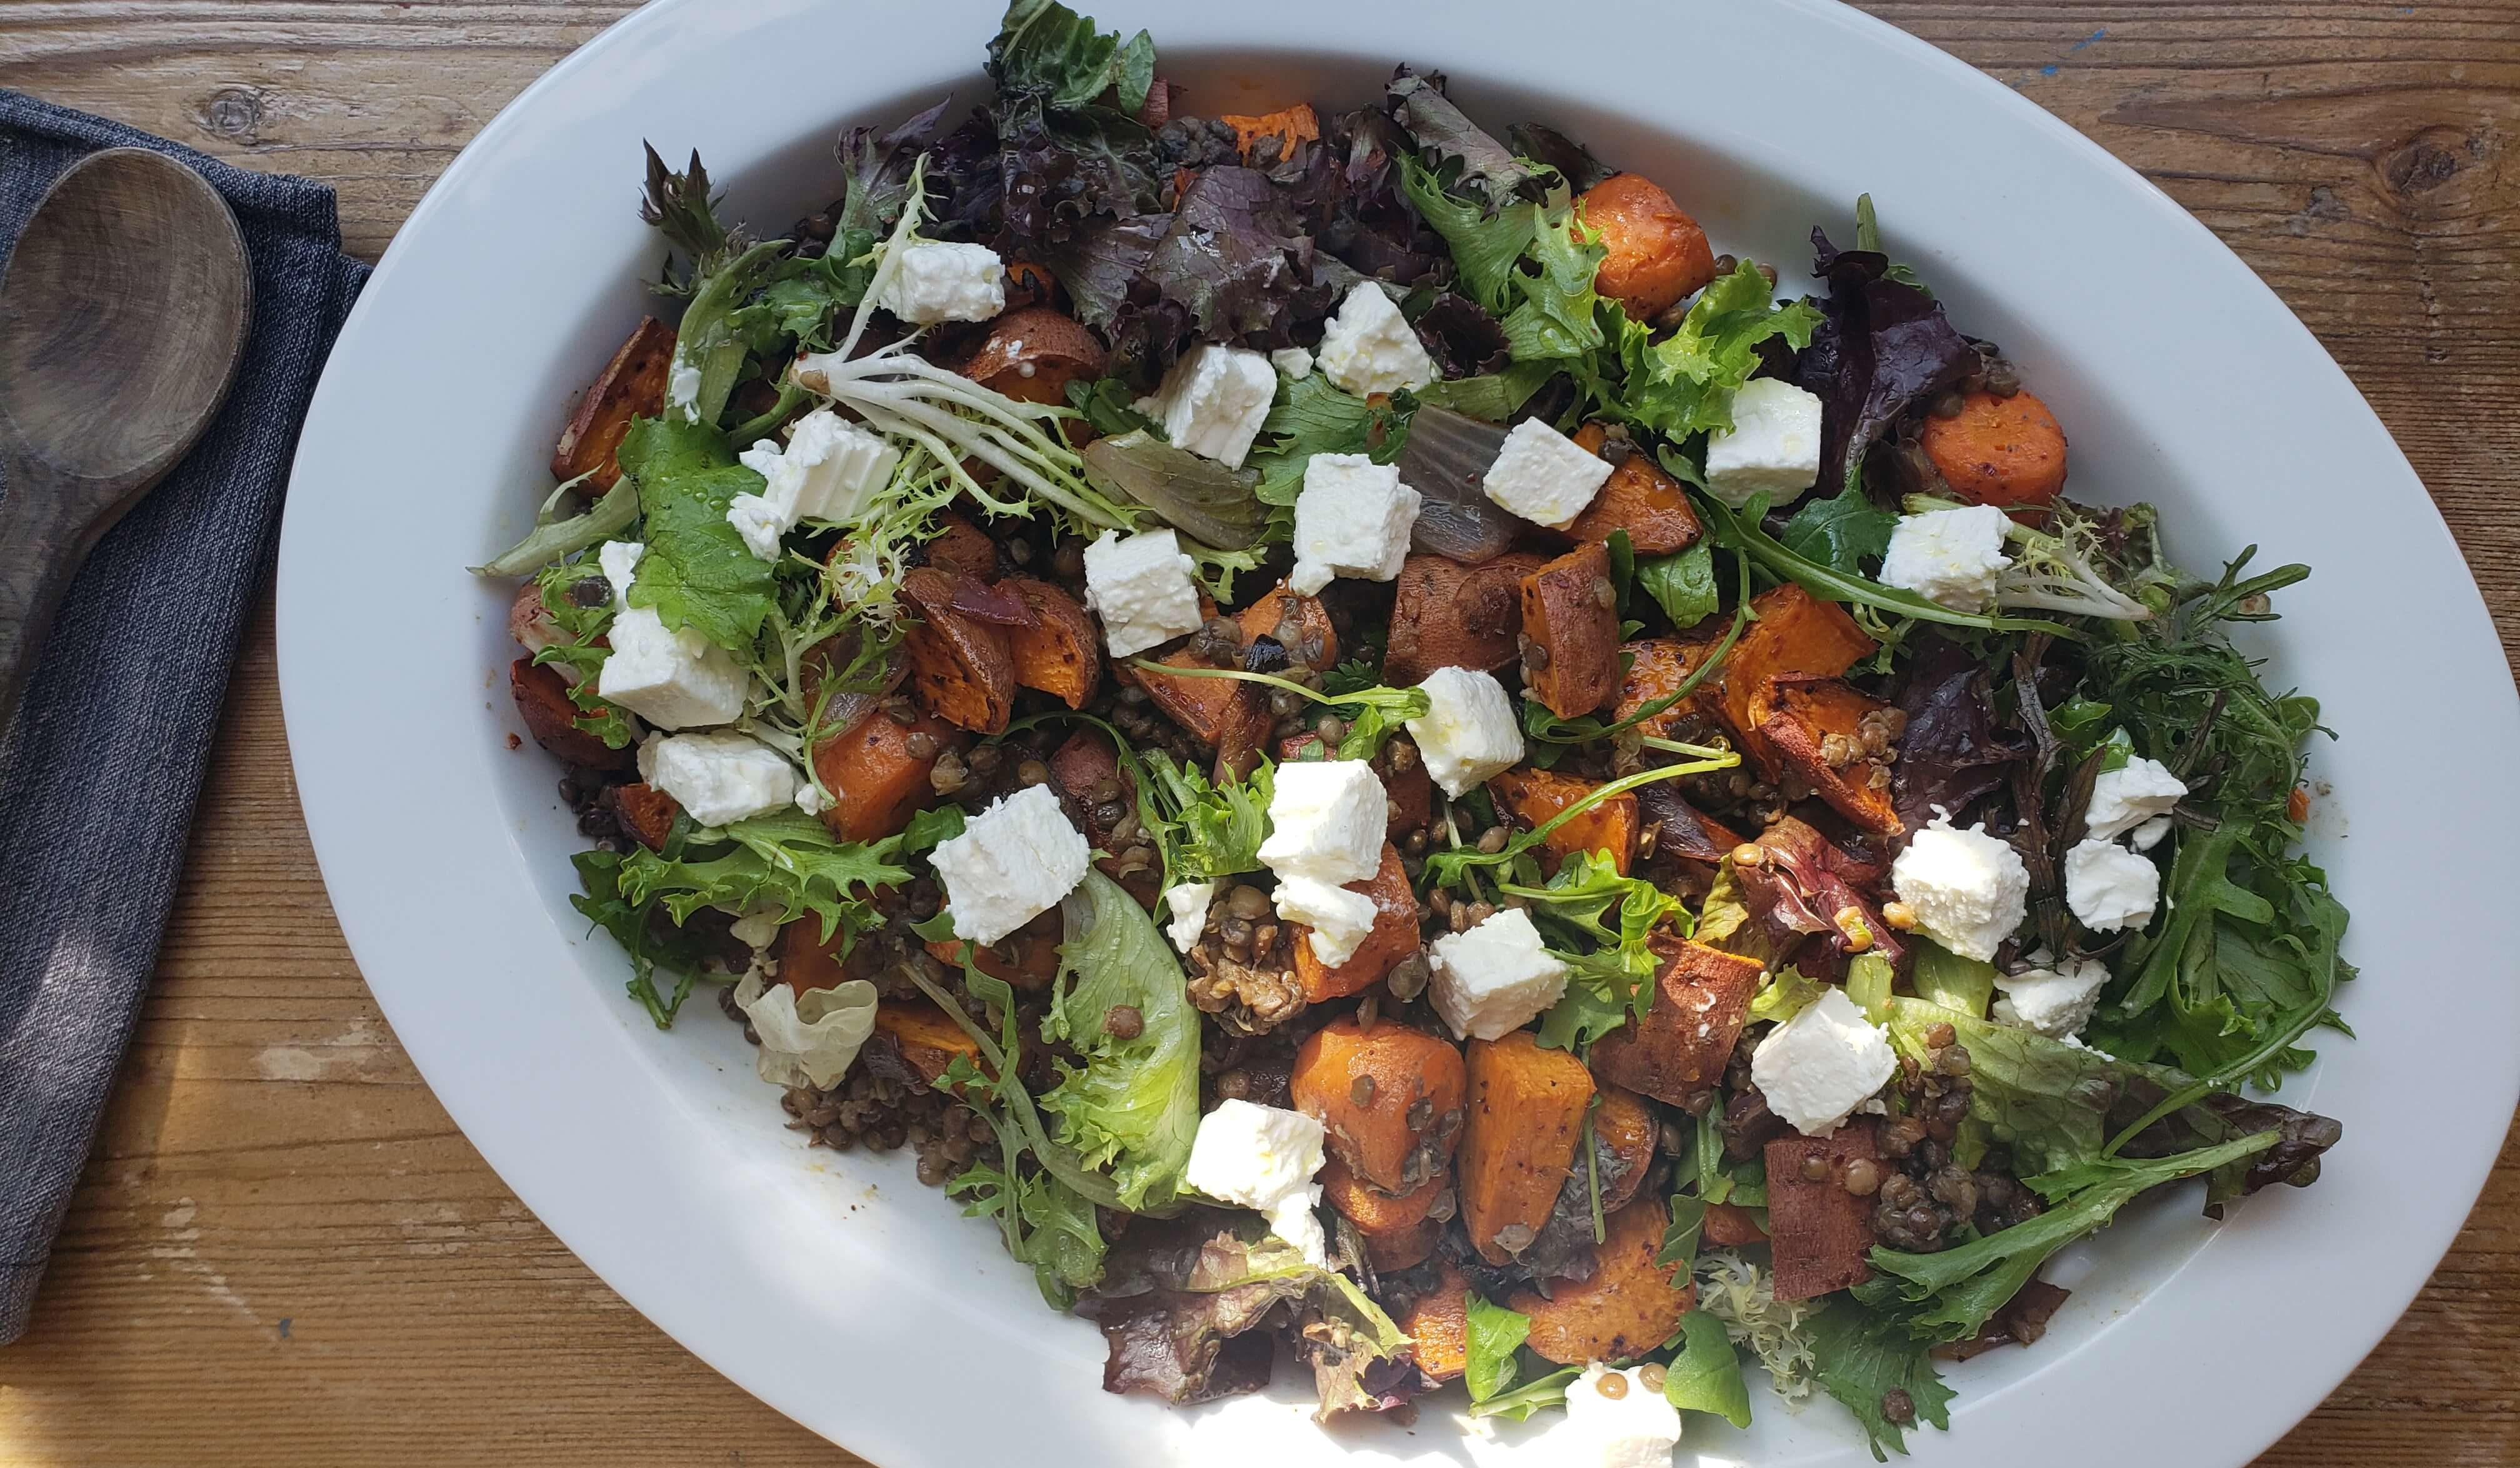 Vegetarian Thanksgiving Recipe | Sweet Potato Salad with Lentils and Feta Cheese